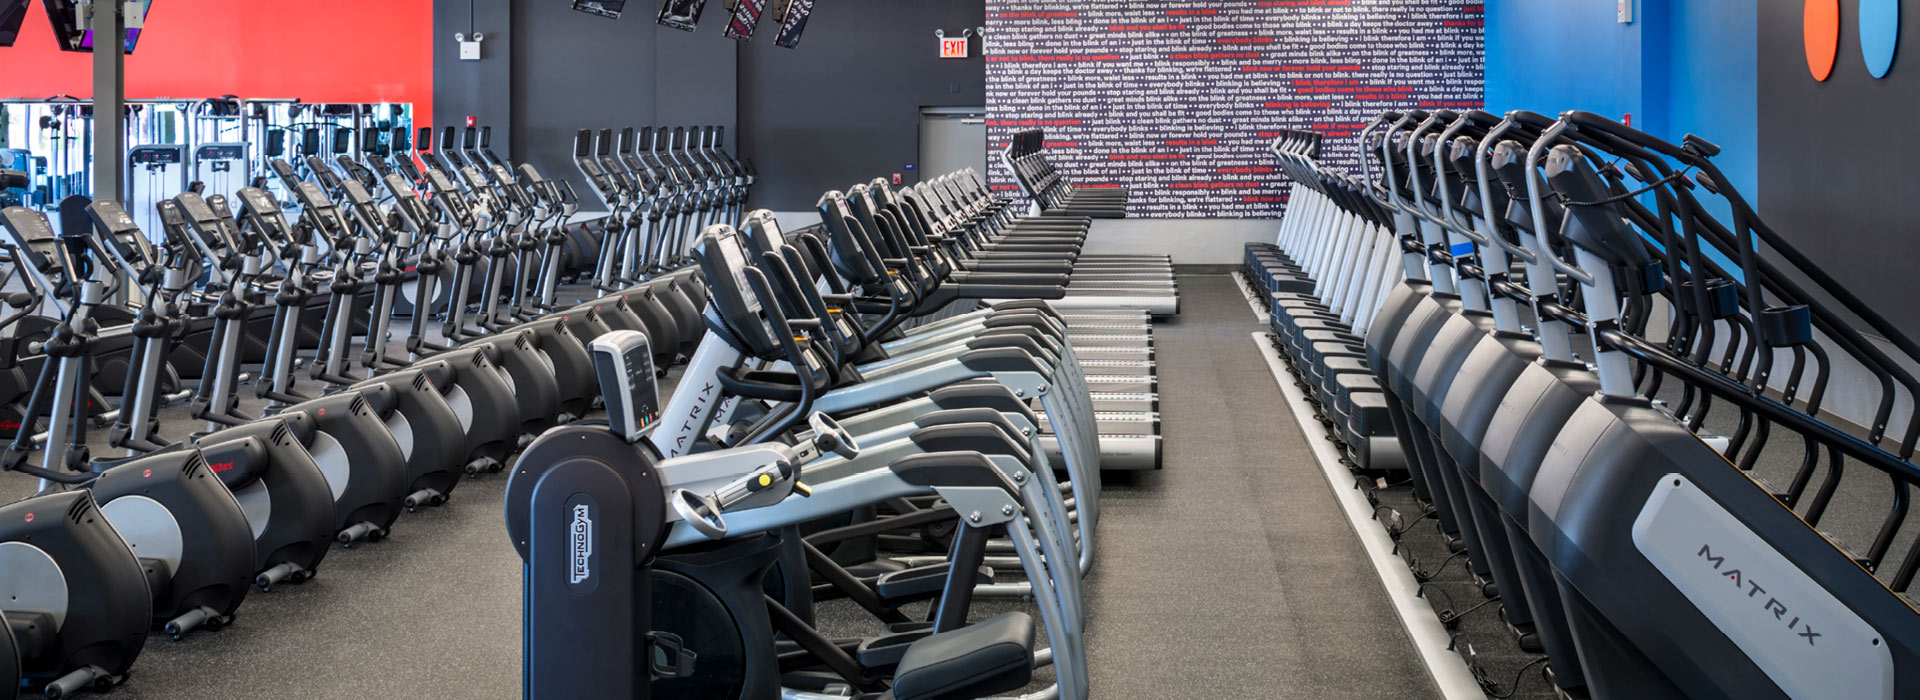 Blink Fitness interior photo